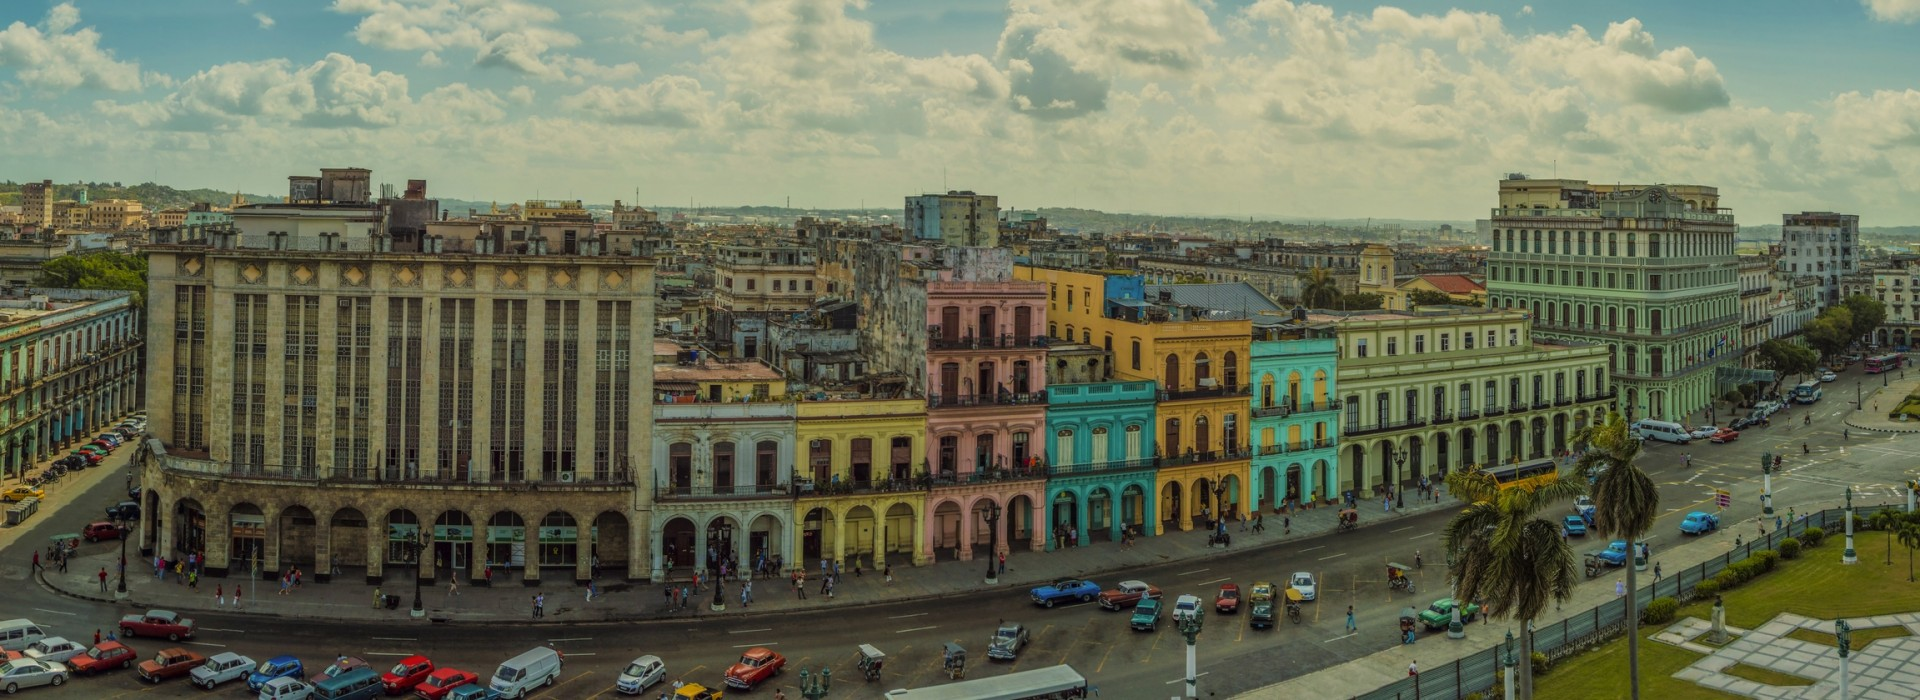 Panoramic view of Havana city, Cuba